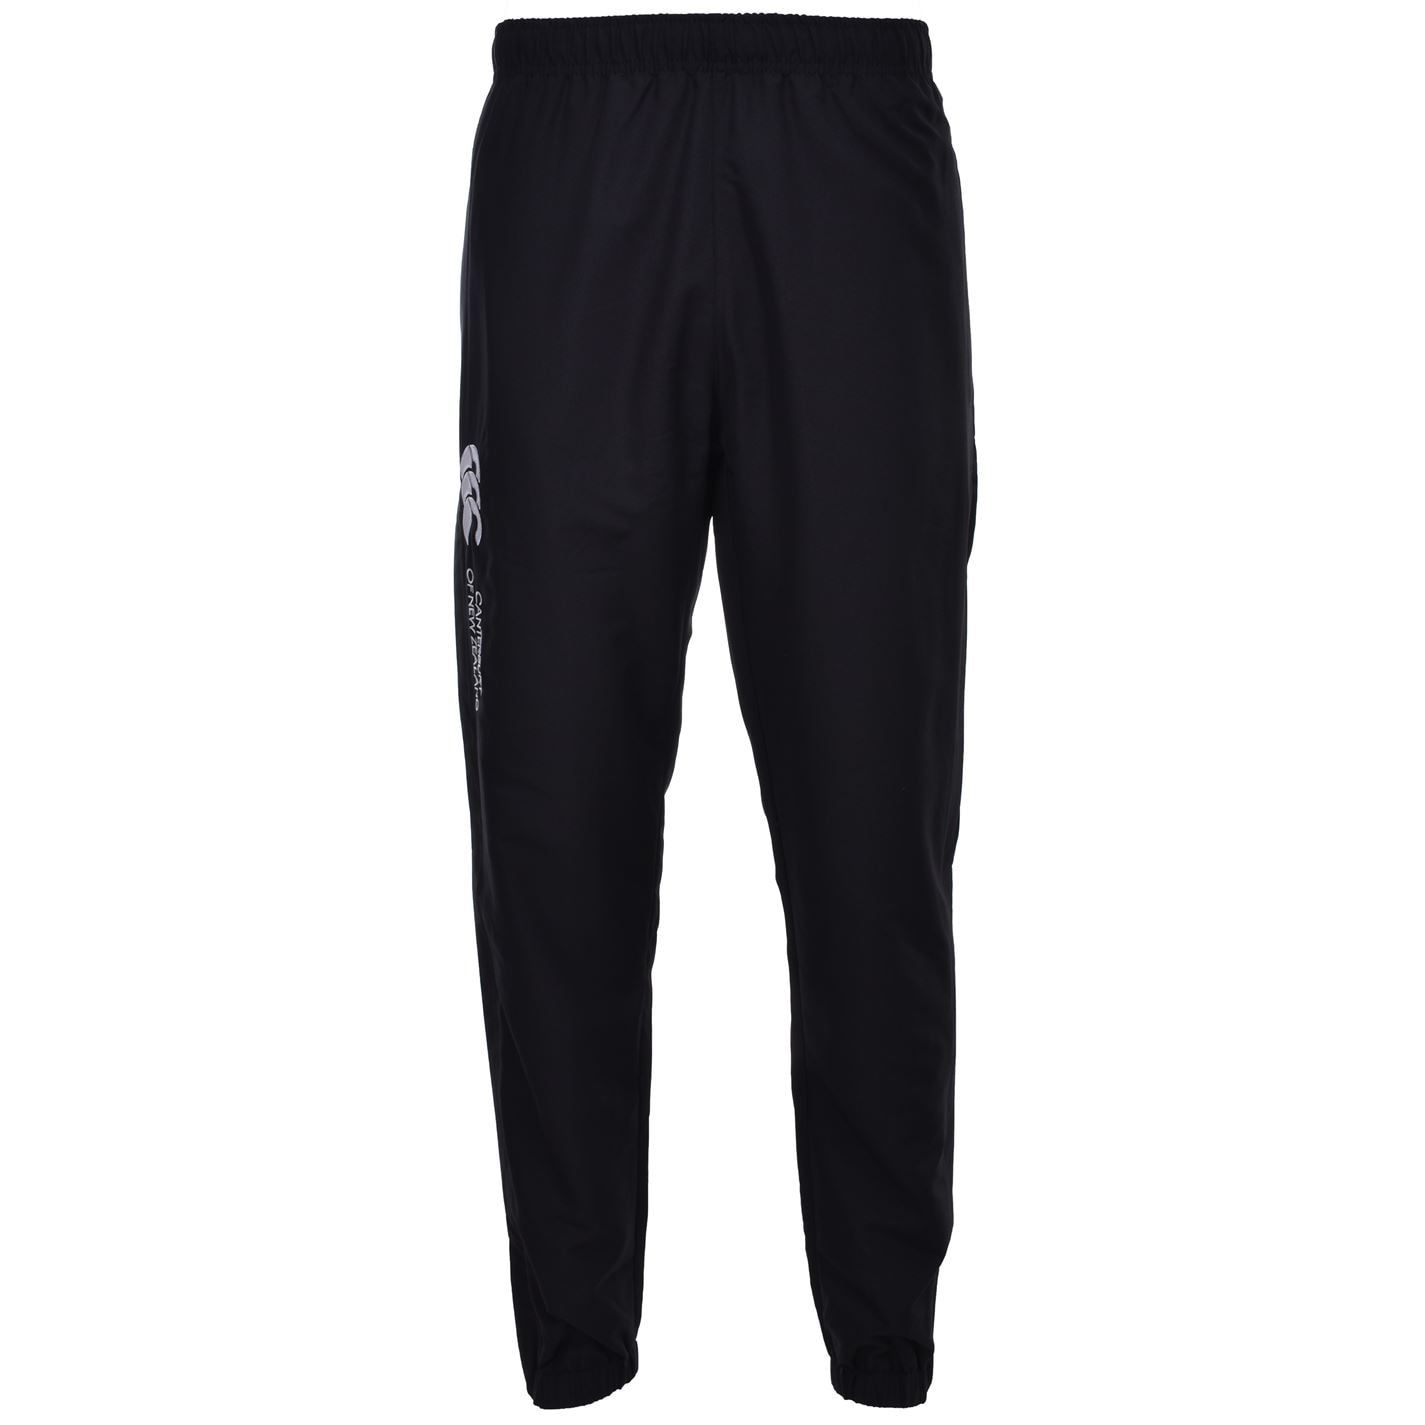 Canterbury-Cuffed-Stadium-Tracksuit-Pants-Mens-Rugby-Sweatpants-Fan-Bottoms thumbnail 6